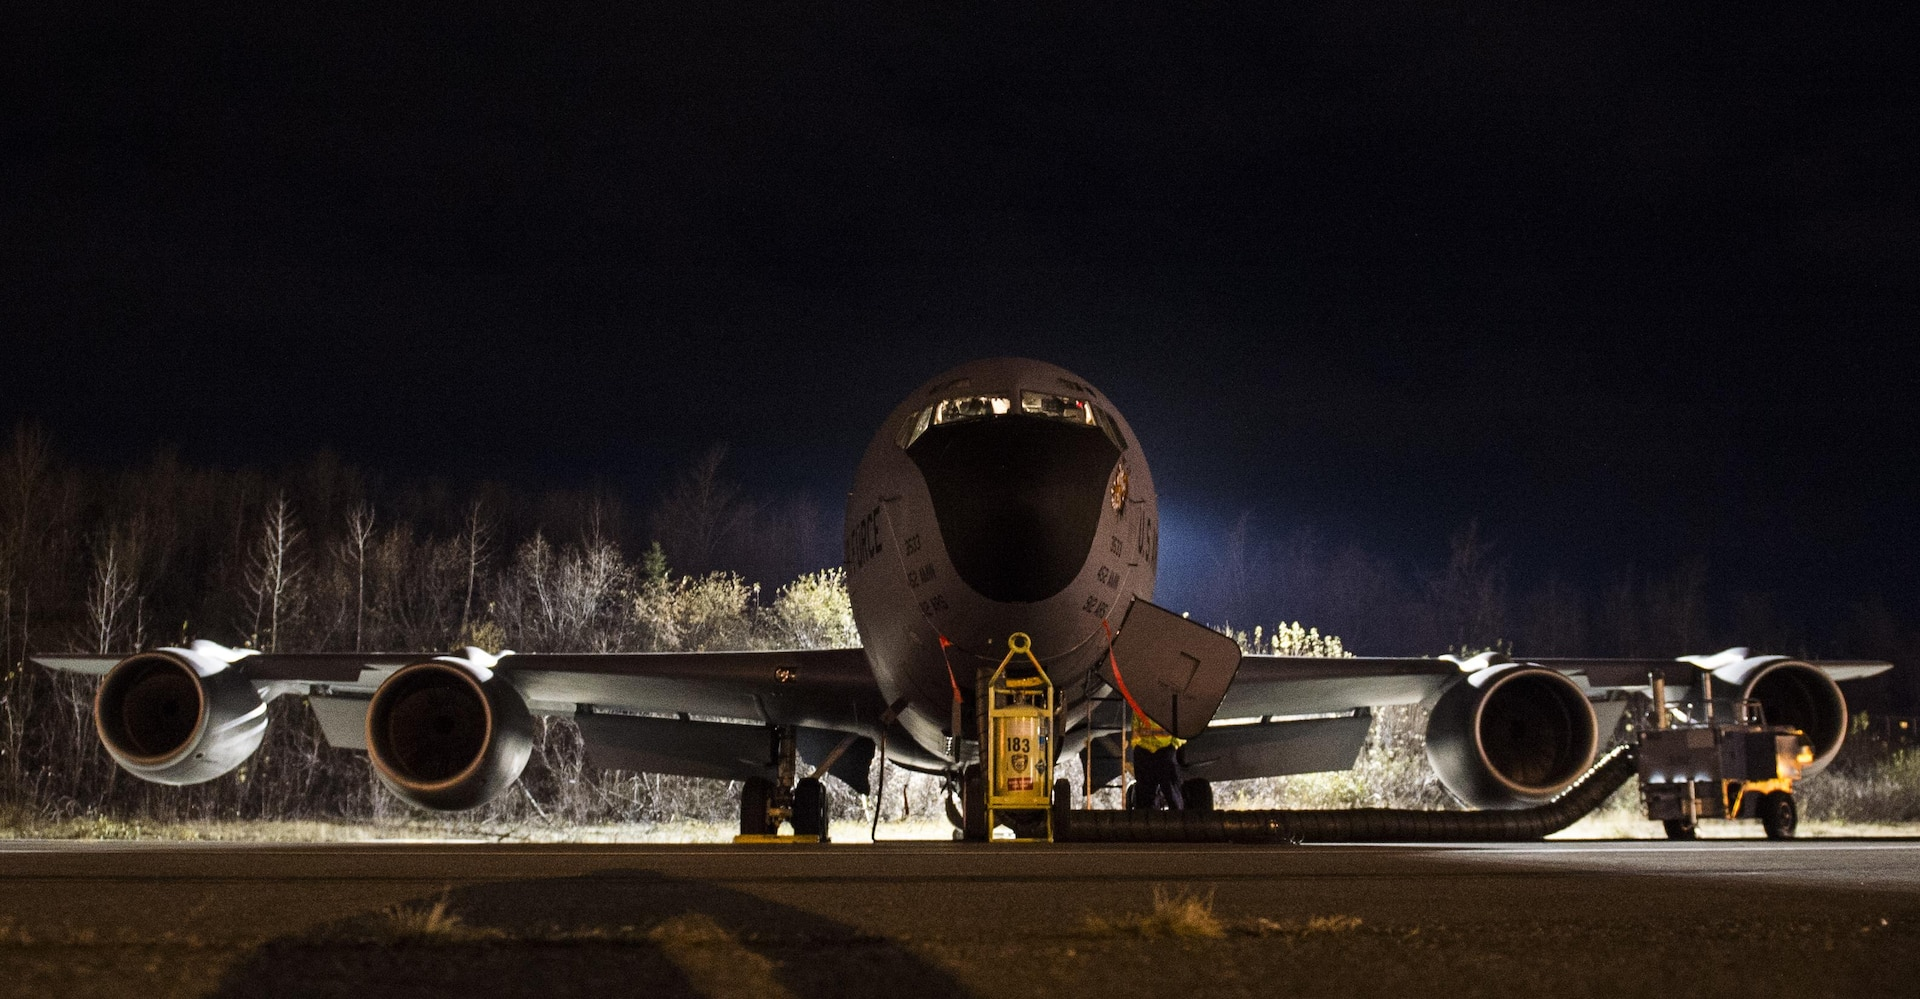 A U.S. Air Force KC-135 Stratotanker belonging to the 912th Air Refueling Squadron from March Air Force Base, Calif., waits for takeoff at Joint Base Elmendorf-Richardson, Alaska, to provide refueling capabilities to Royal Canadian Air Force CF-18s while both units participate in the Vigilant Shield 2017 Field Training Exercise 20 Oct., 2016, in the high arctic.